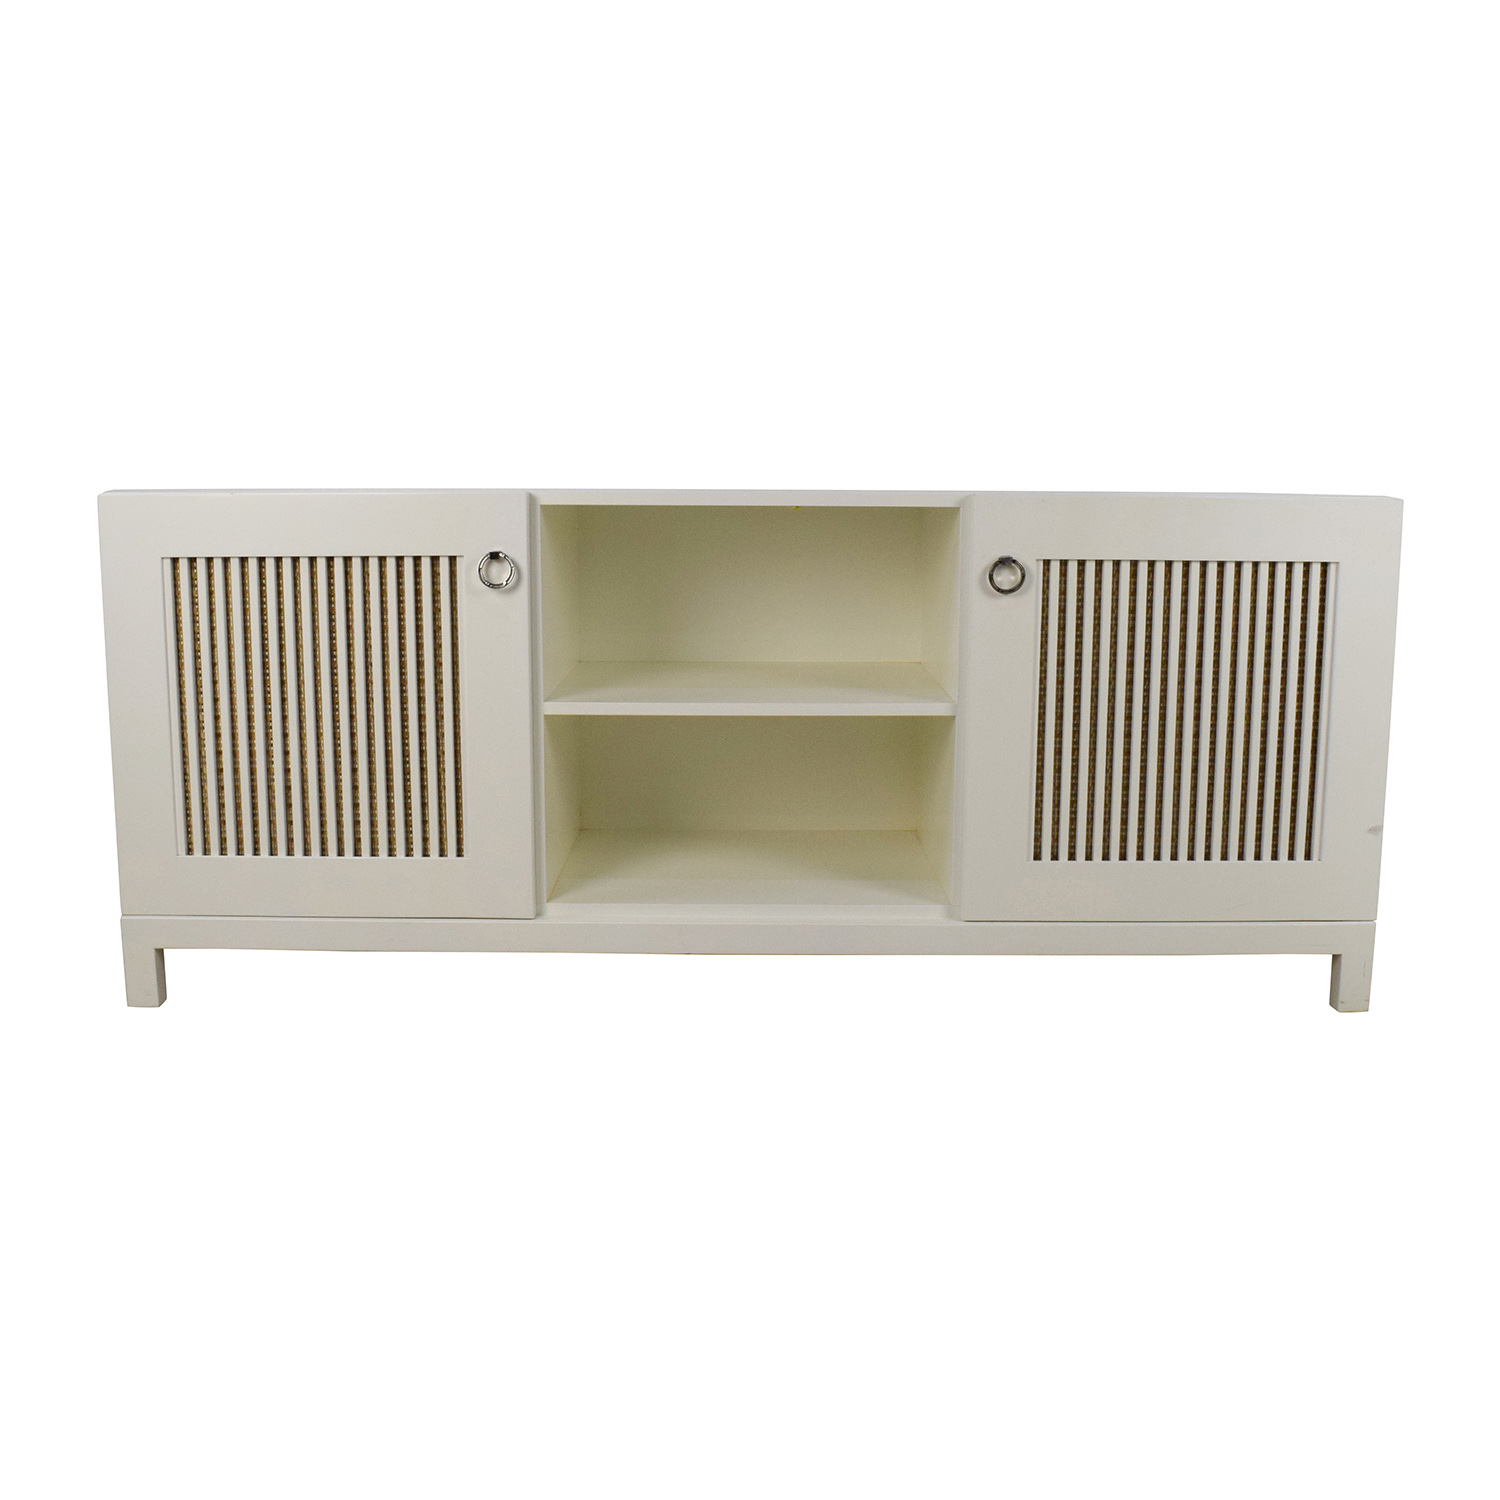 White Wood Custom Credenza with Two Doors / Cabinets & Sideboards